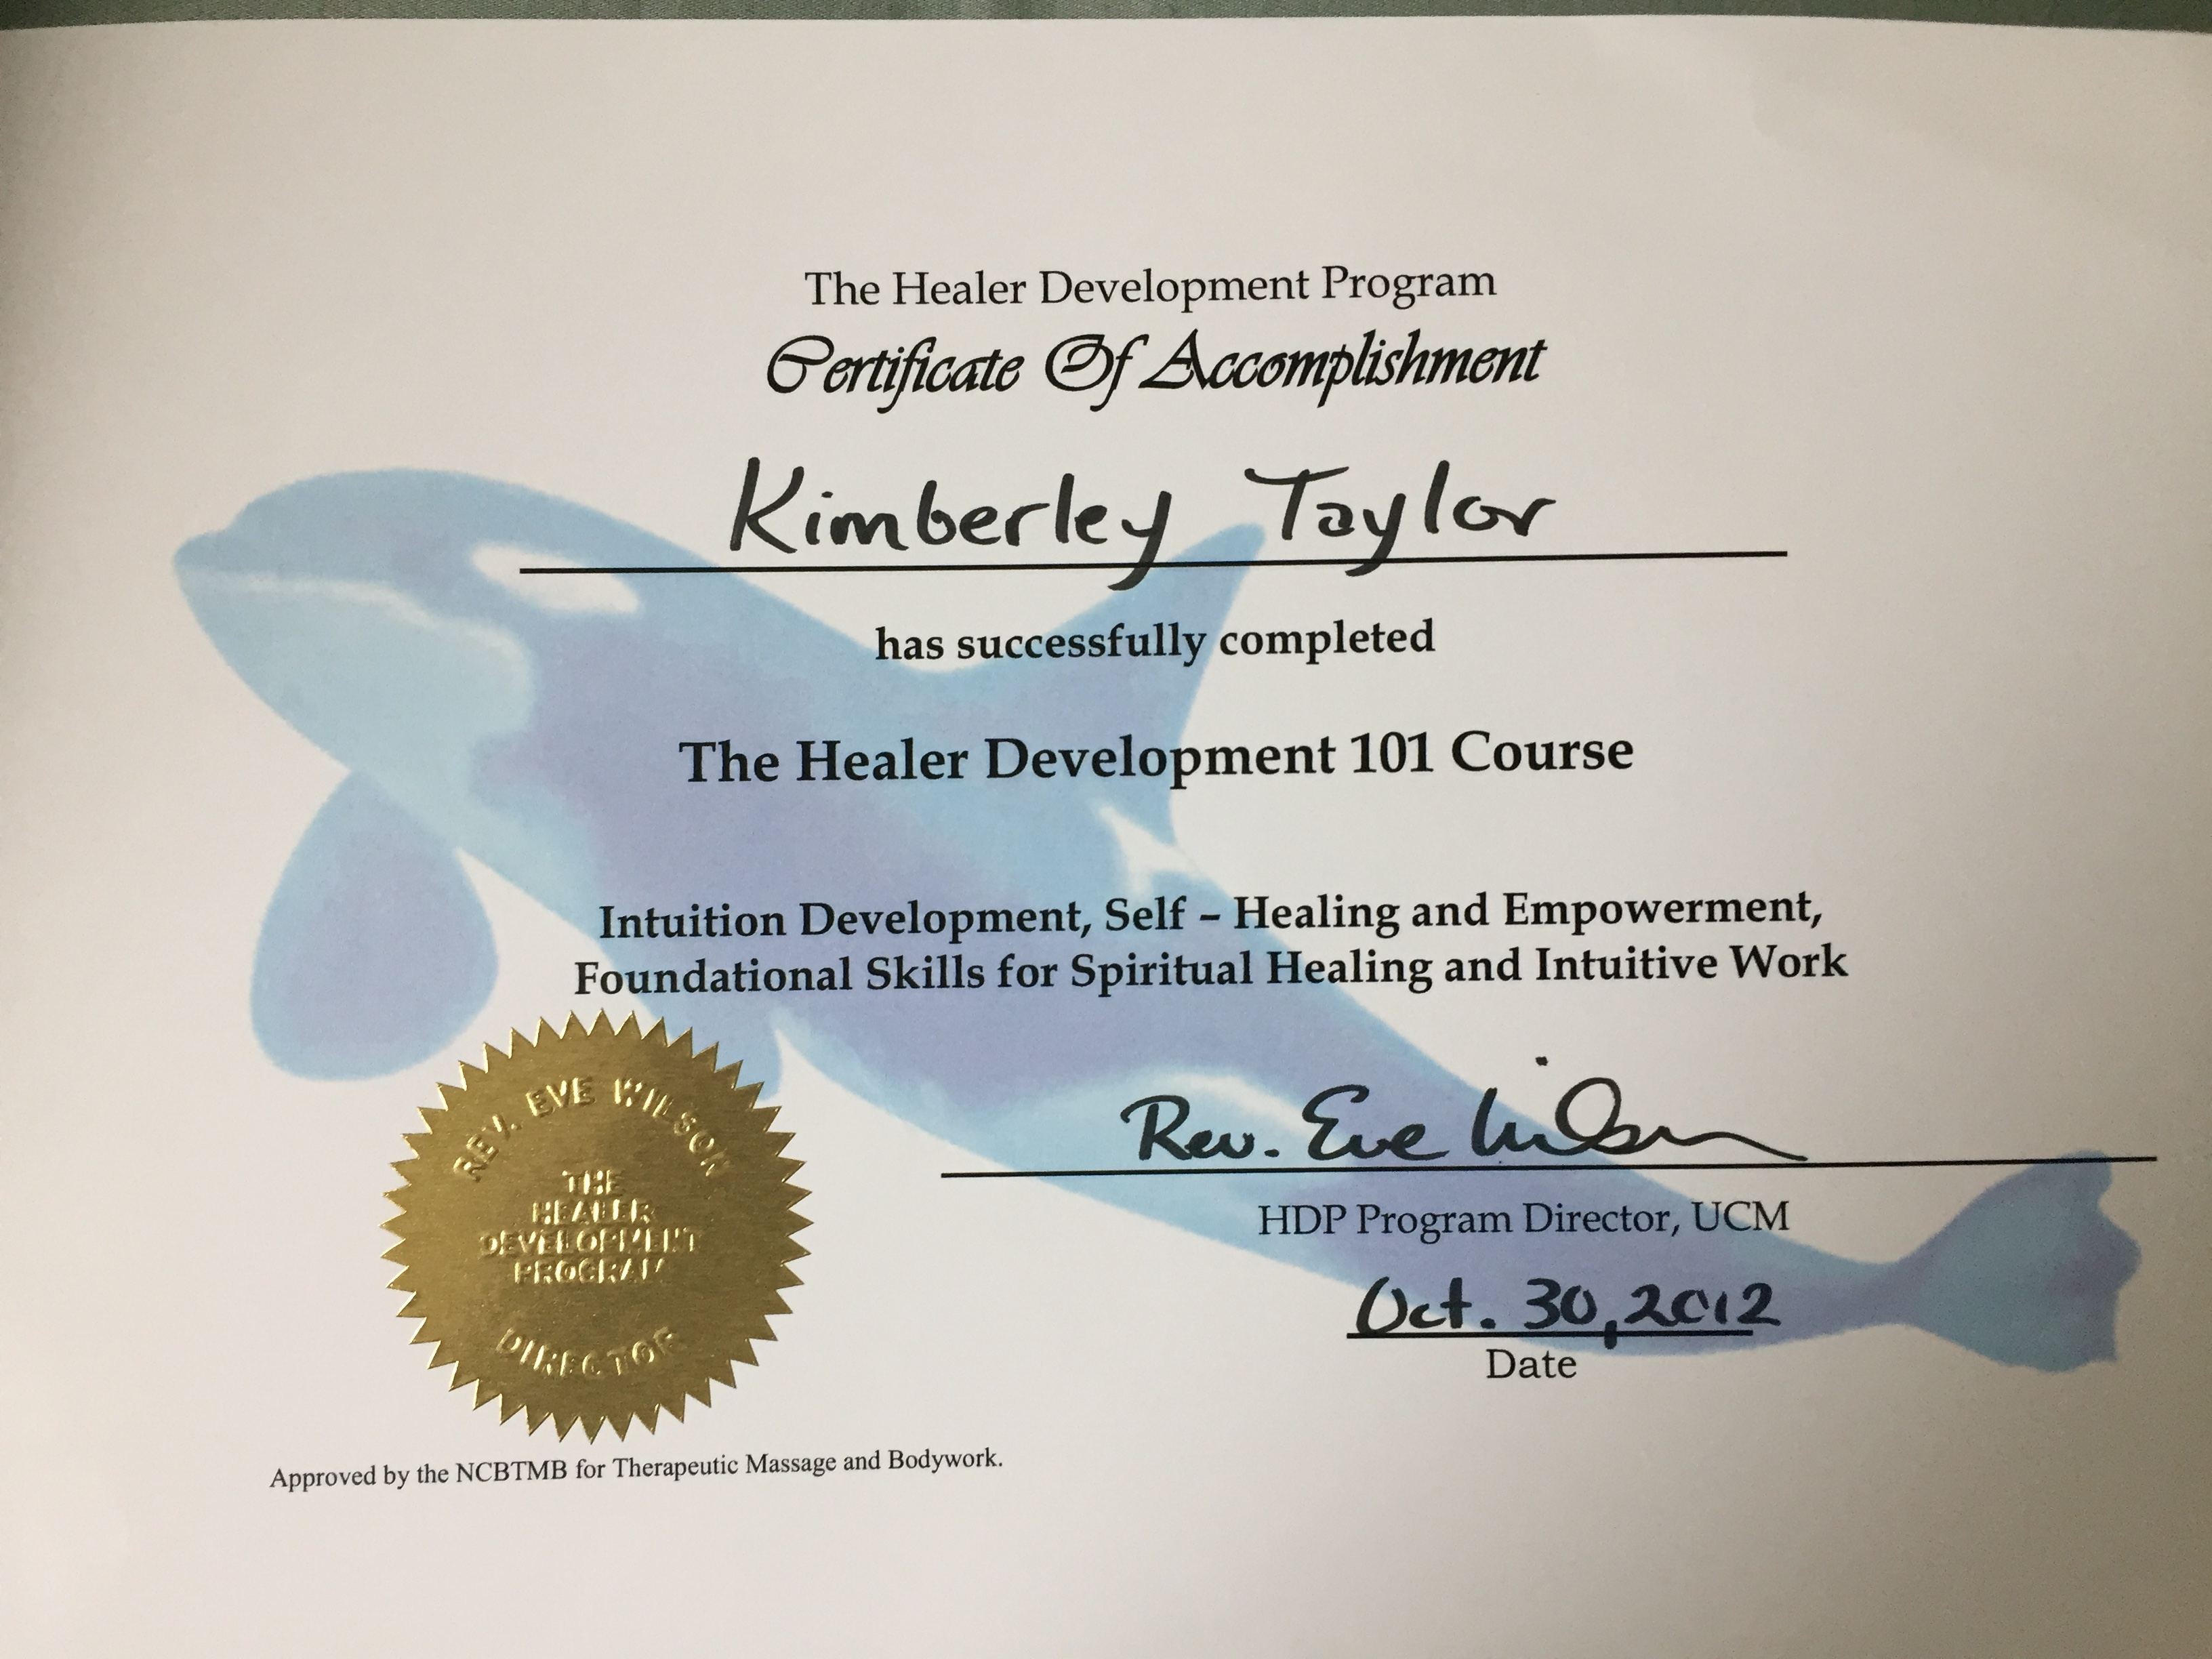 Healer Development 101 Course